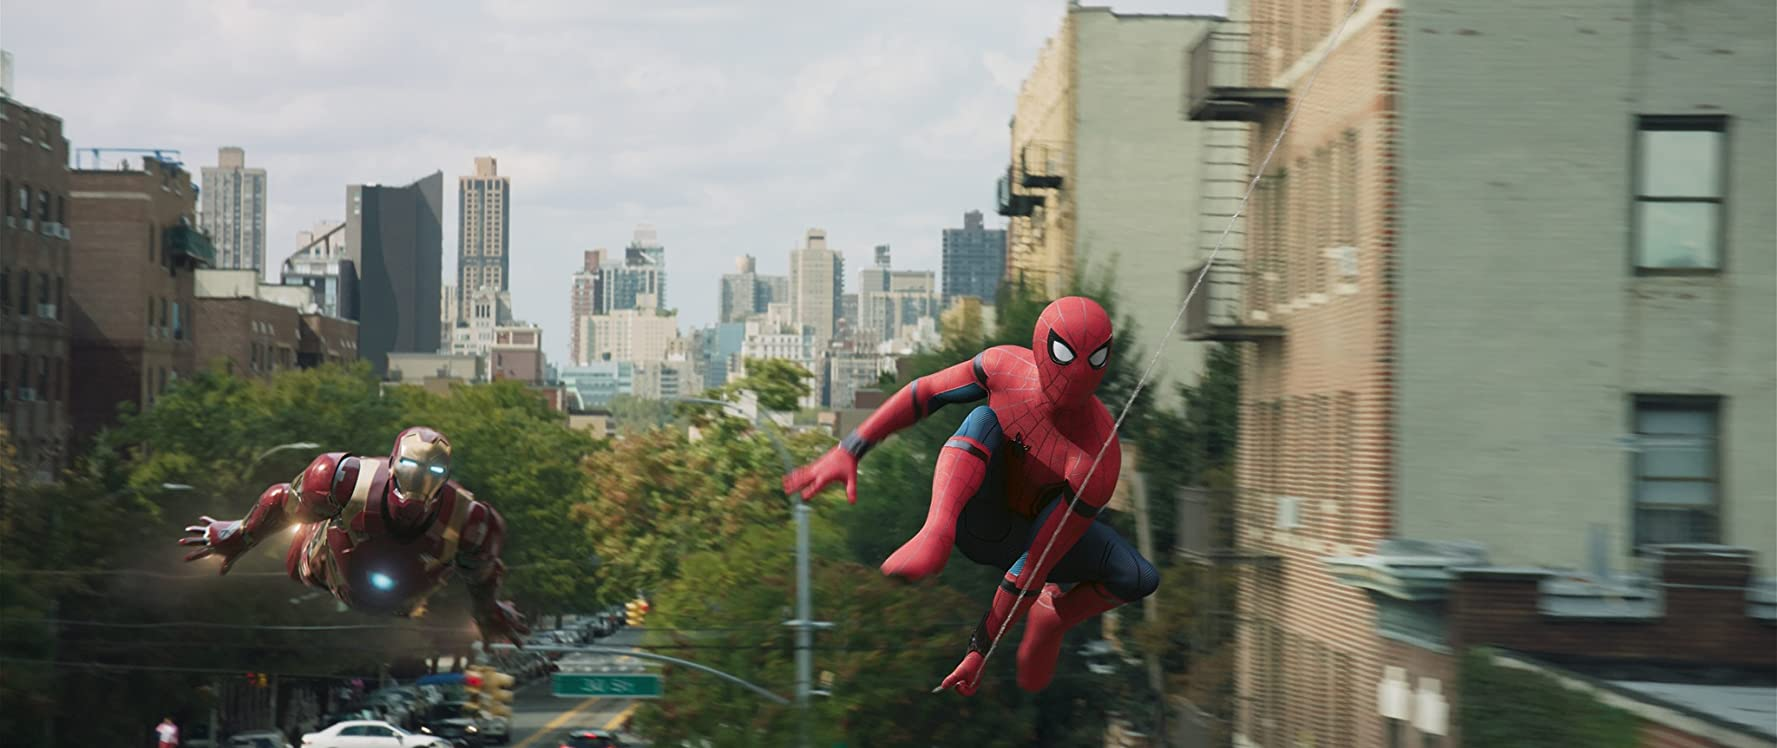 Spider-Man: Homecoming (2017) / IMDB.com